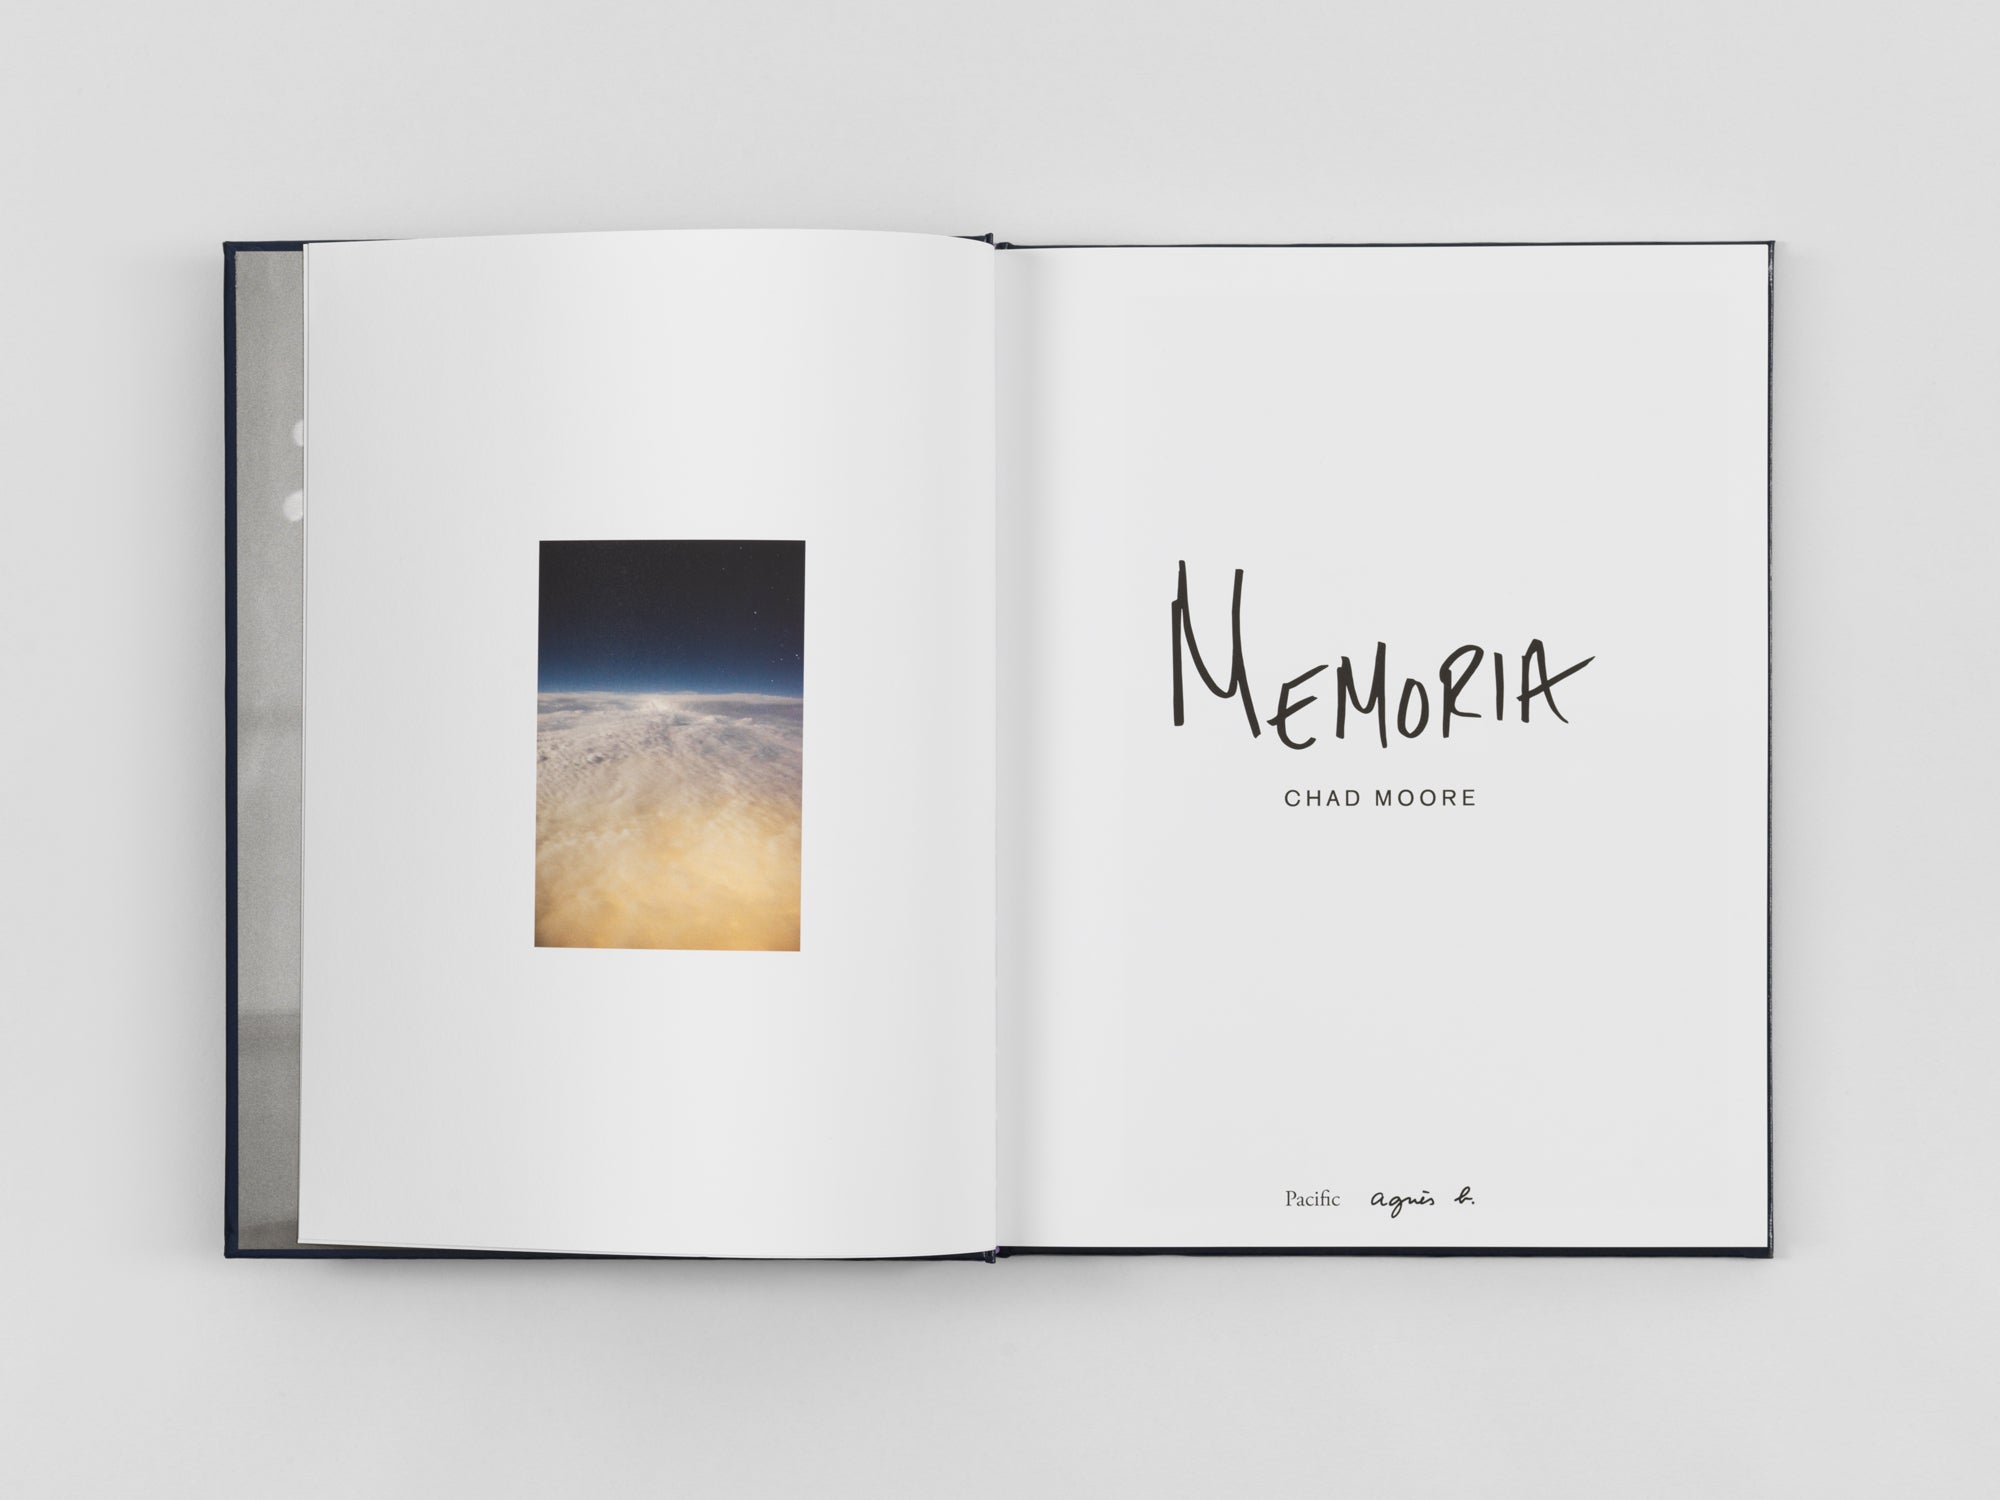 Memoria by Chad Moore, designed by Pacific Books and published by agnes. b. and Pacific